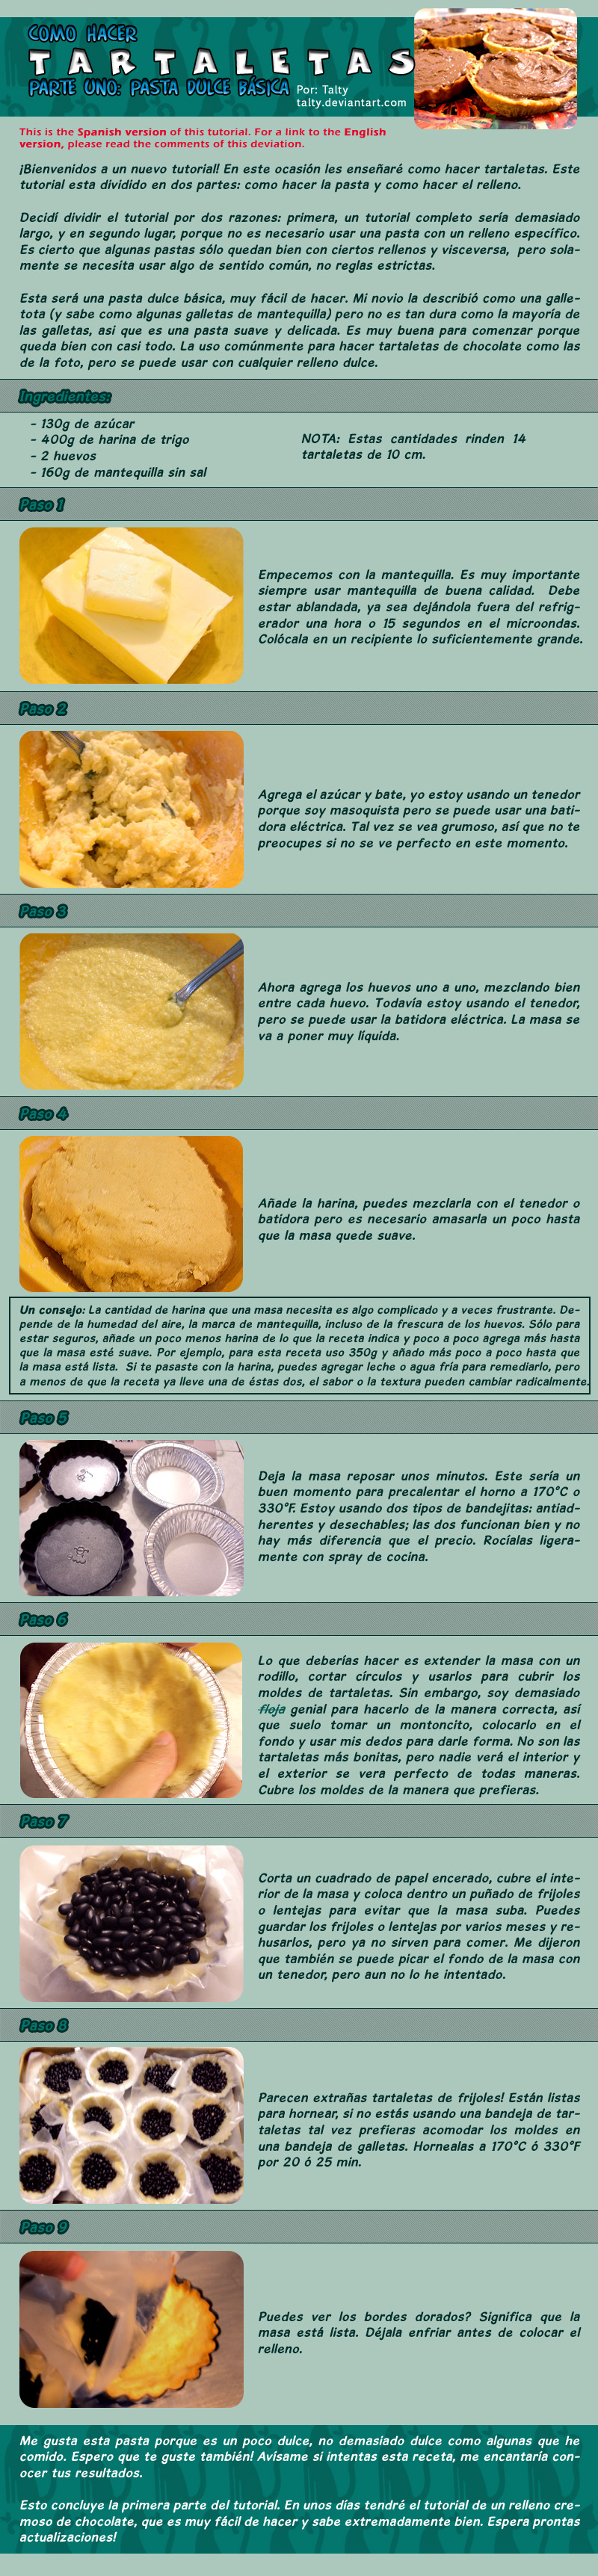 Tutorial de Tartaletas 1: Masa by Talty